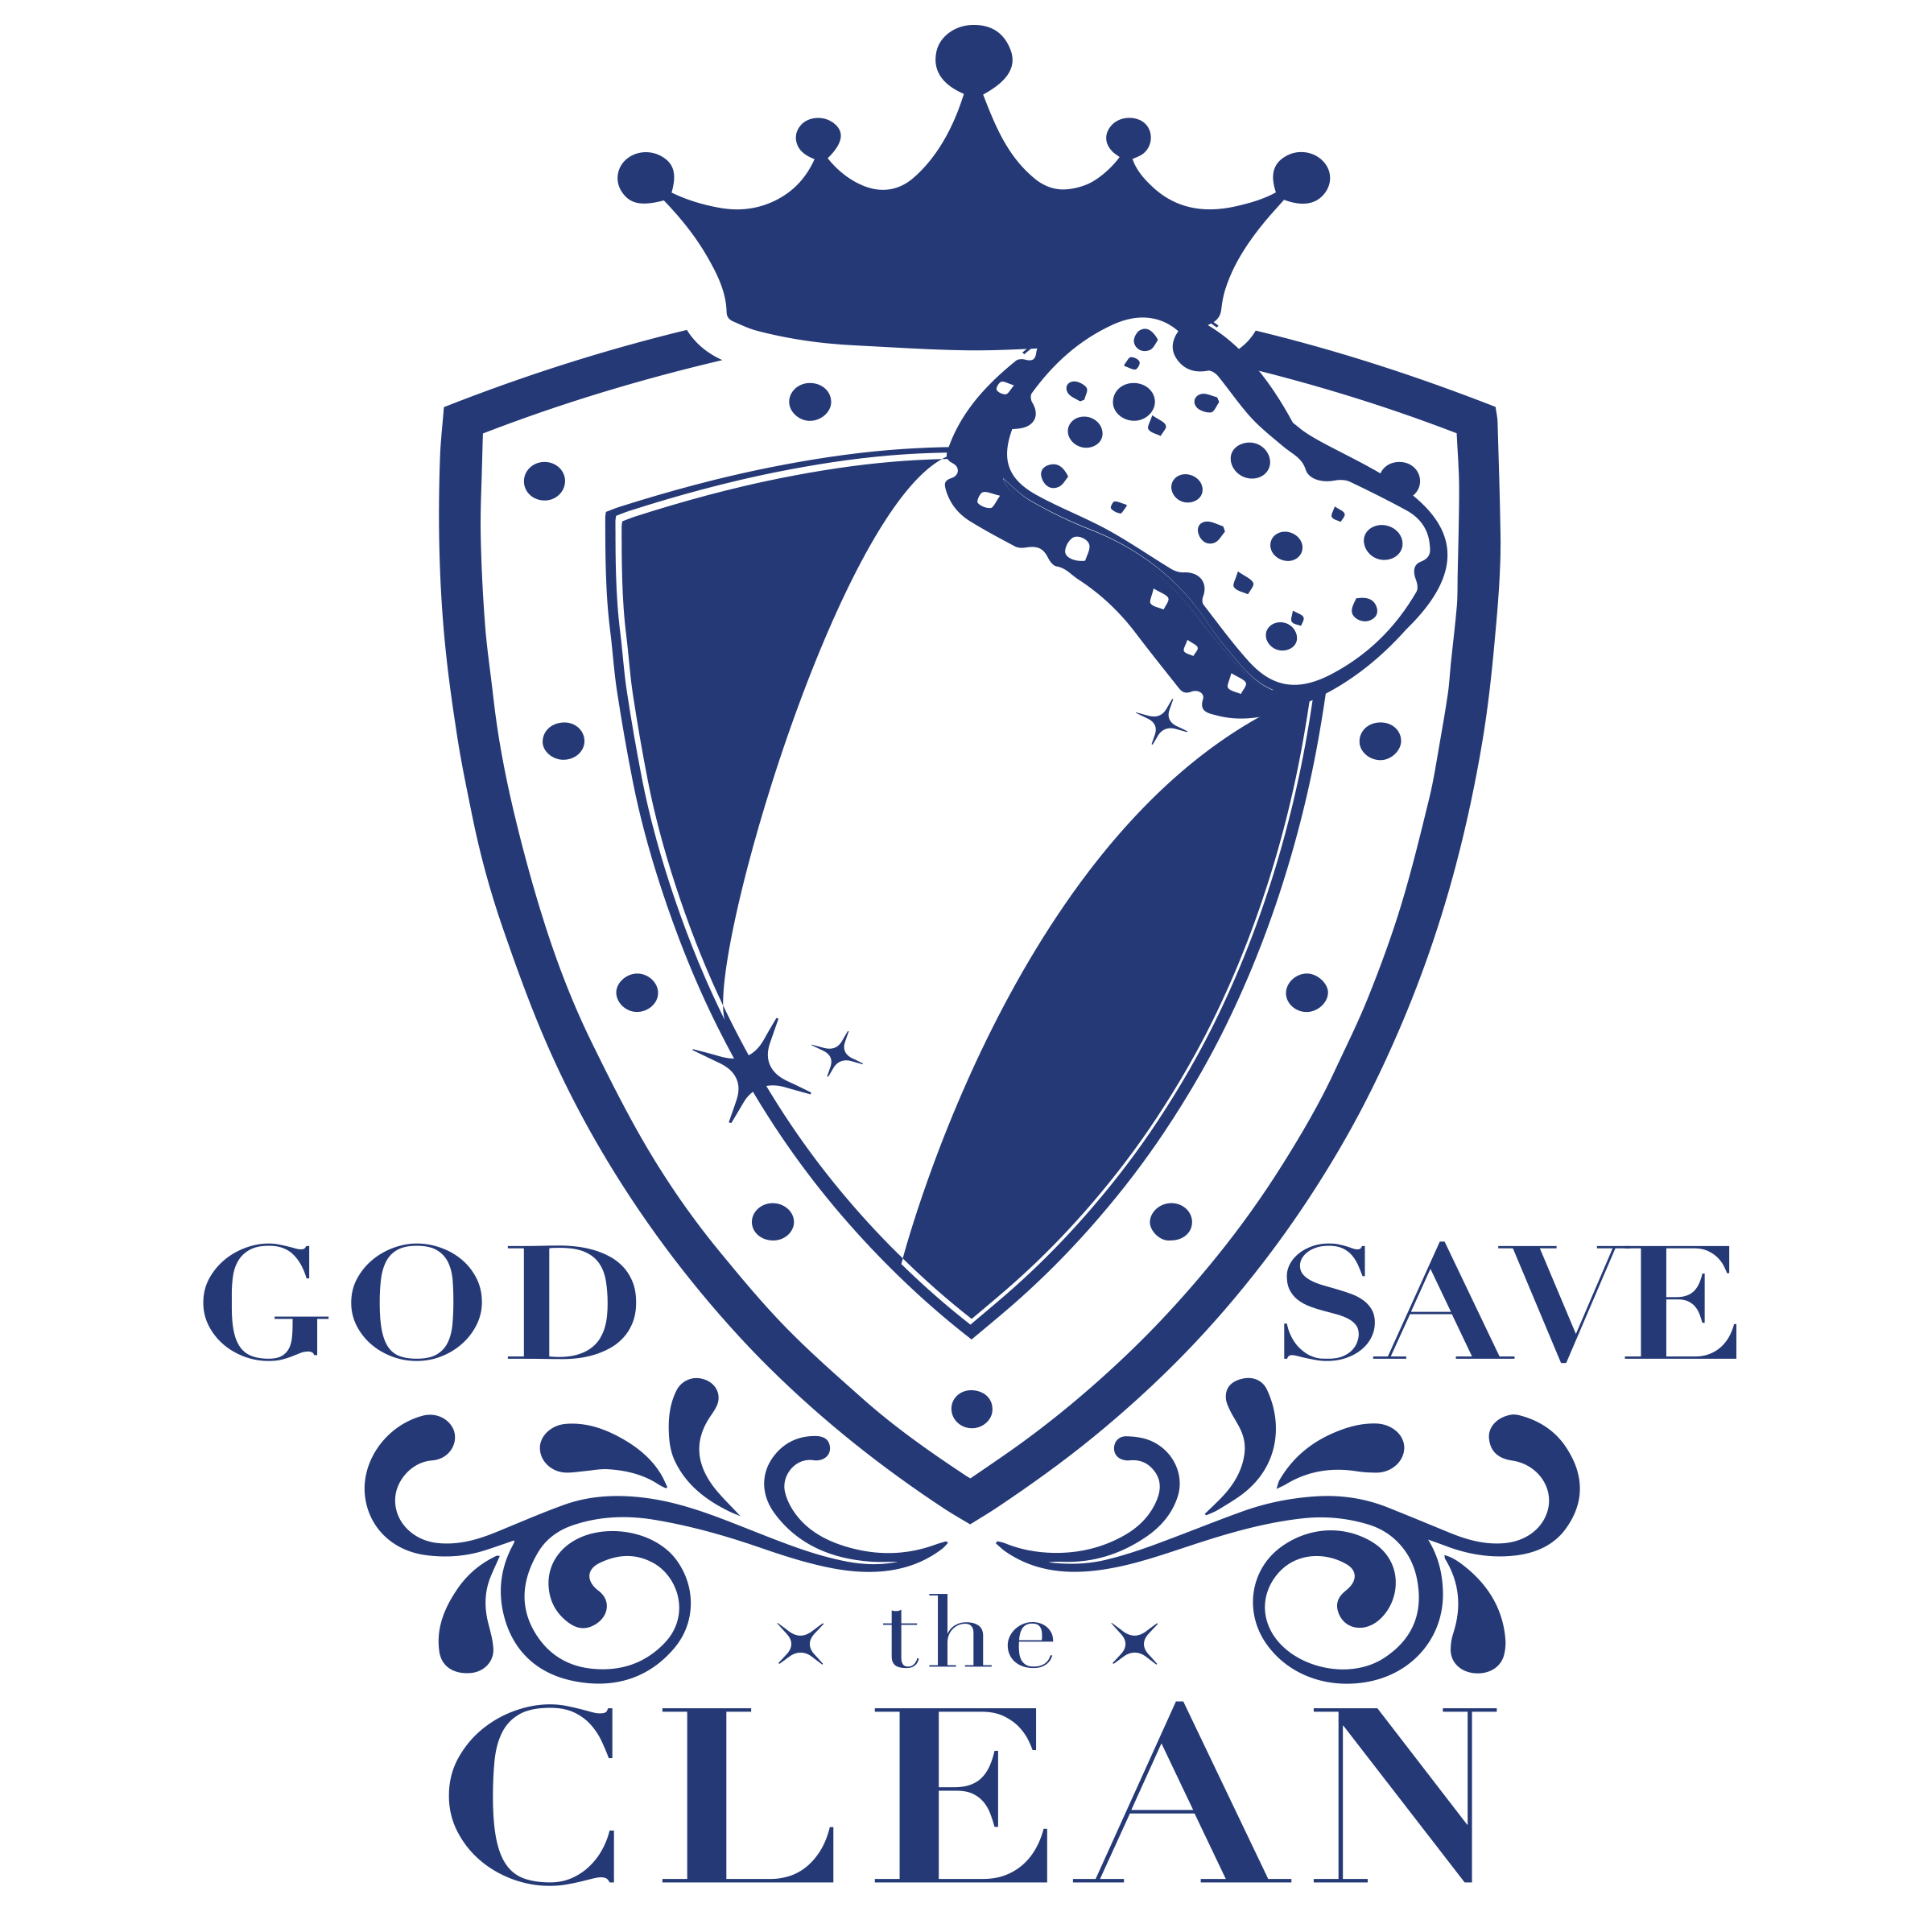 God-Save-the-Clean-LOGOS-003